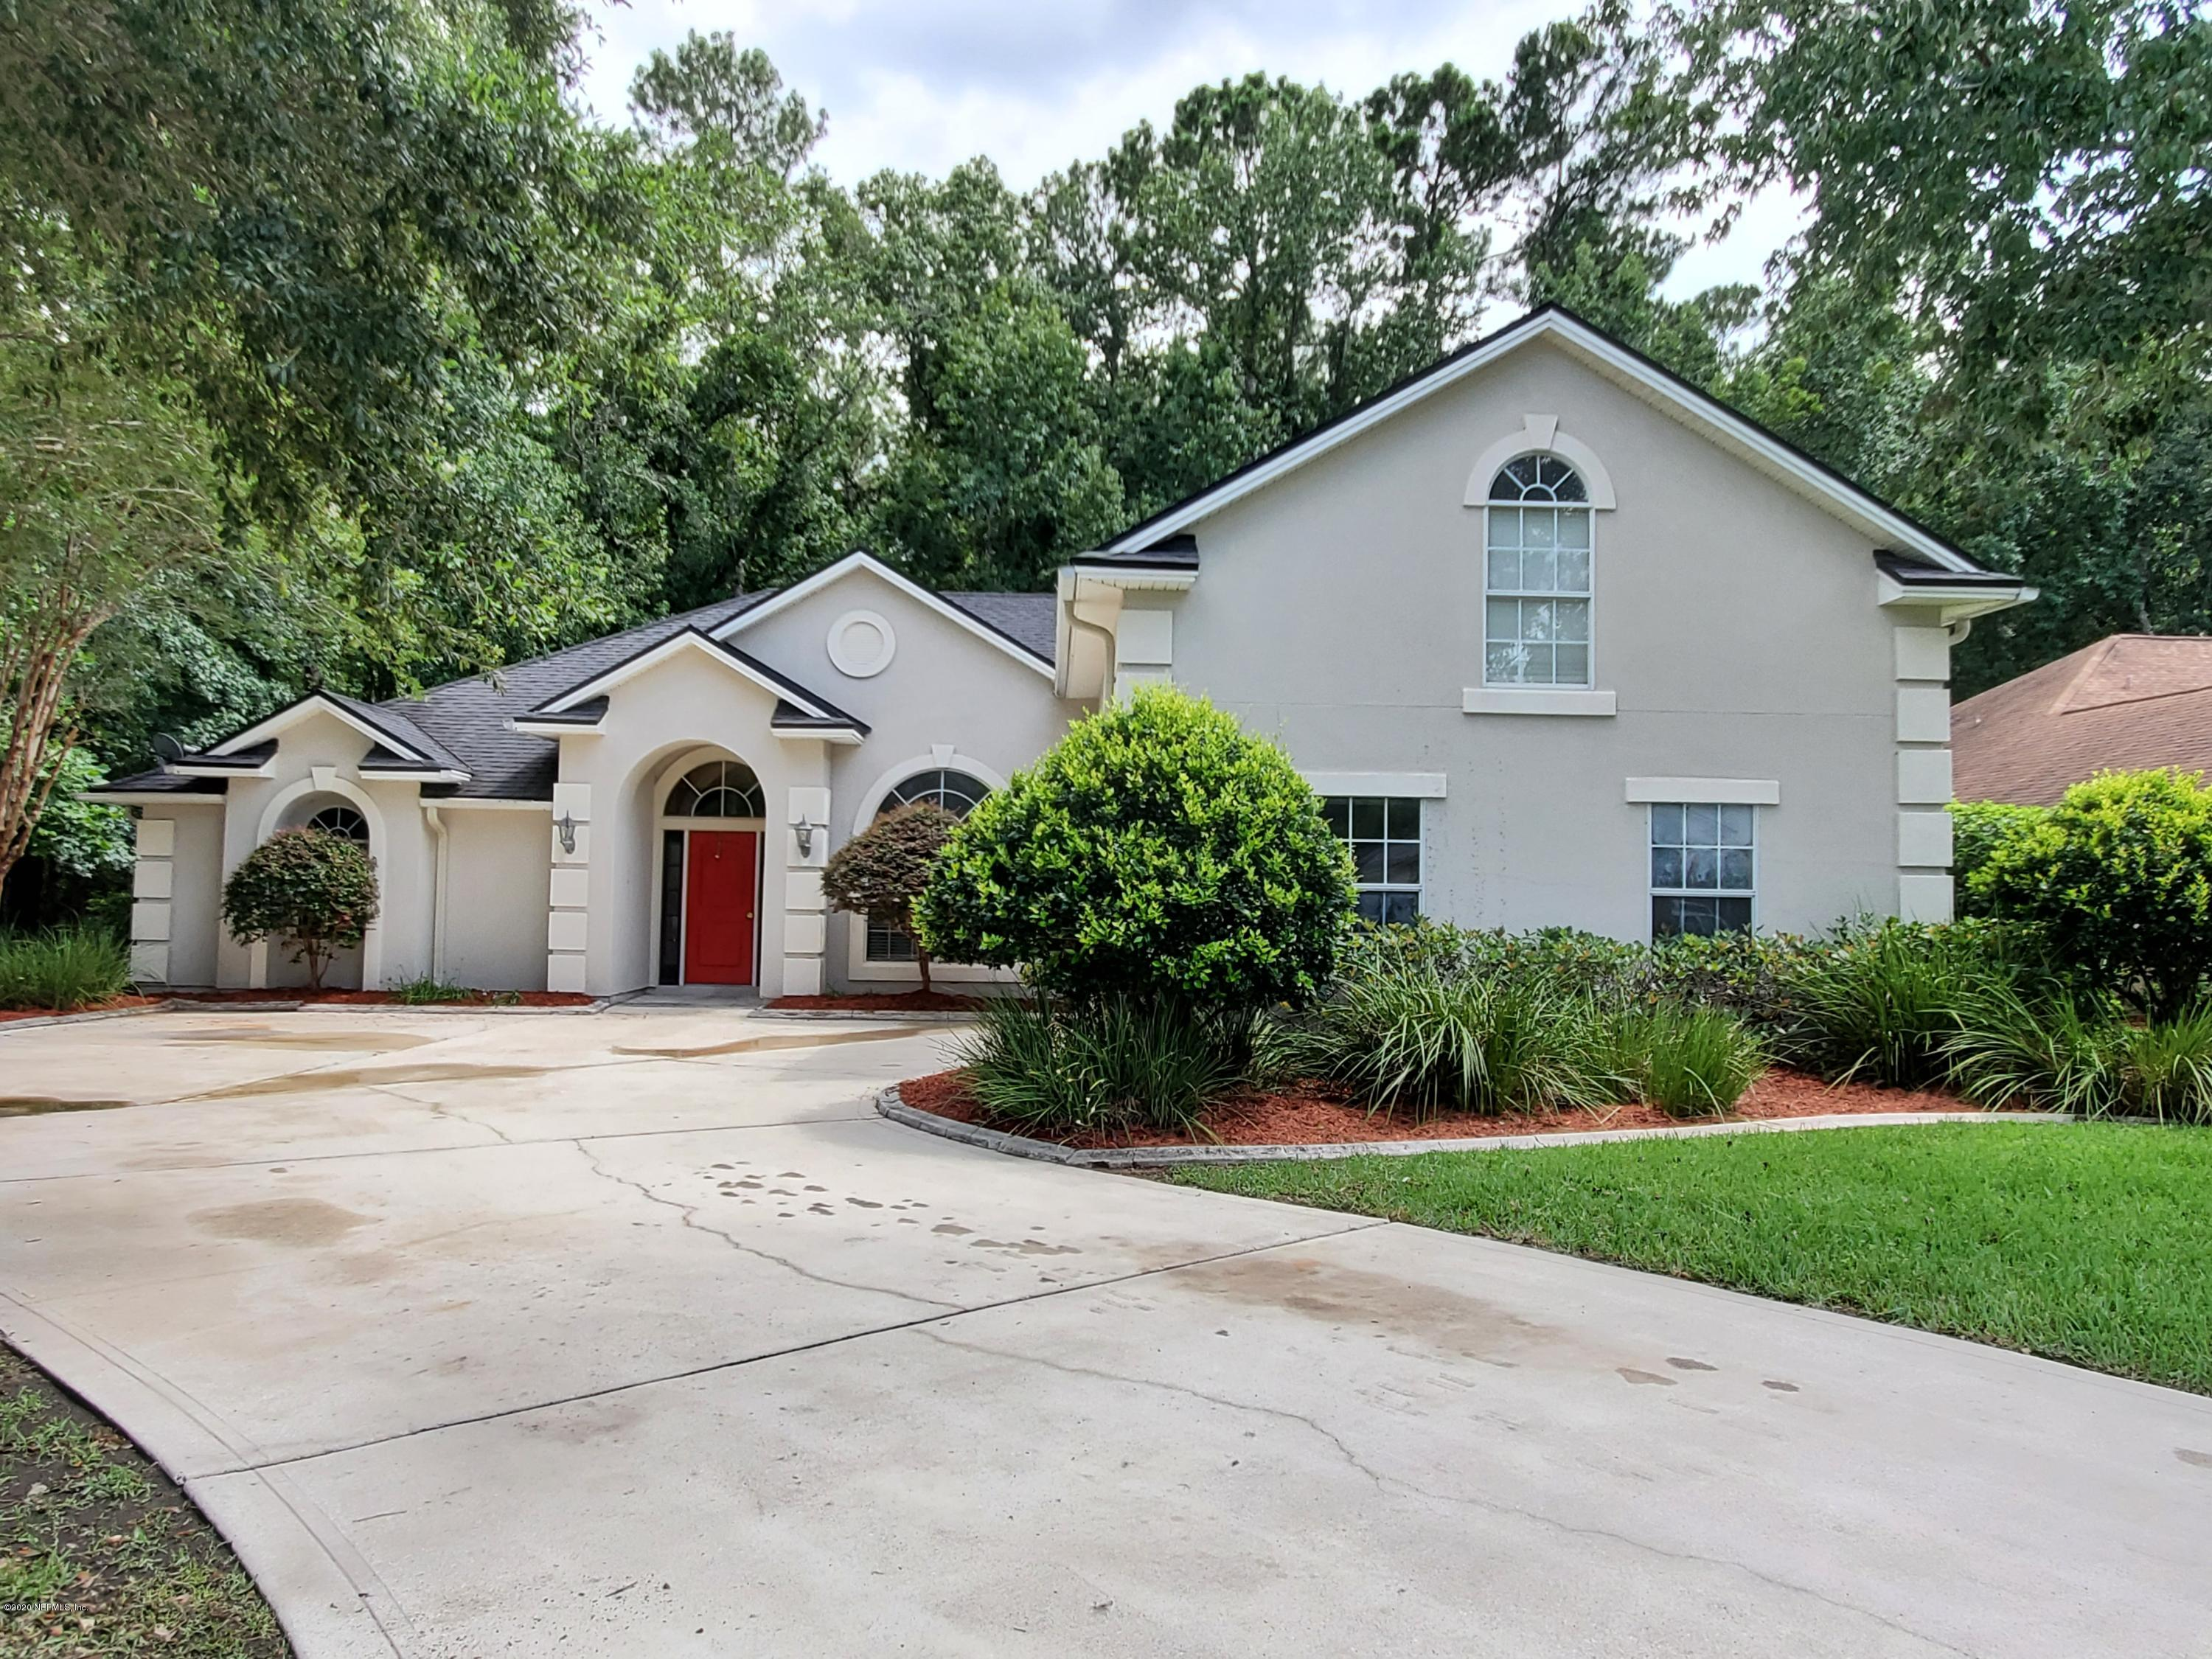 513 OAKMONT, ORANGE PARK, FLORIDA 32073, 4 Bedrooms Bedrooms, ,3 BathroomsBathrooms,Residential,For sale,OAKMONT,1061879